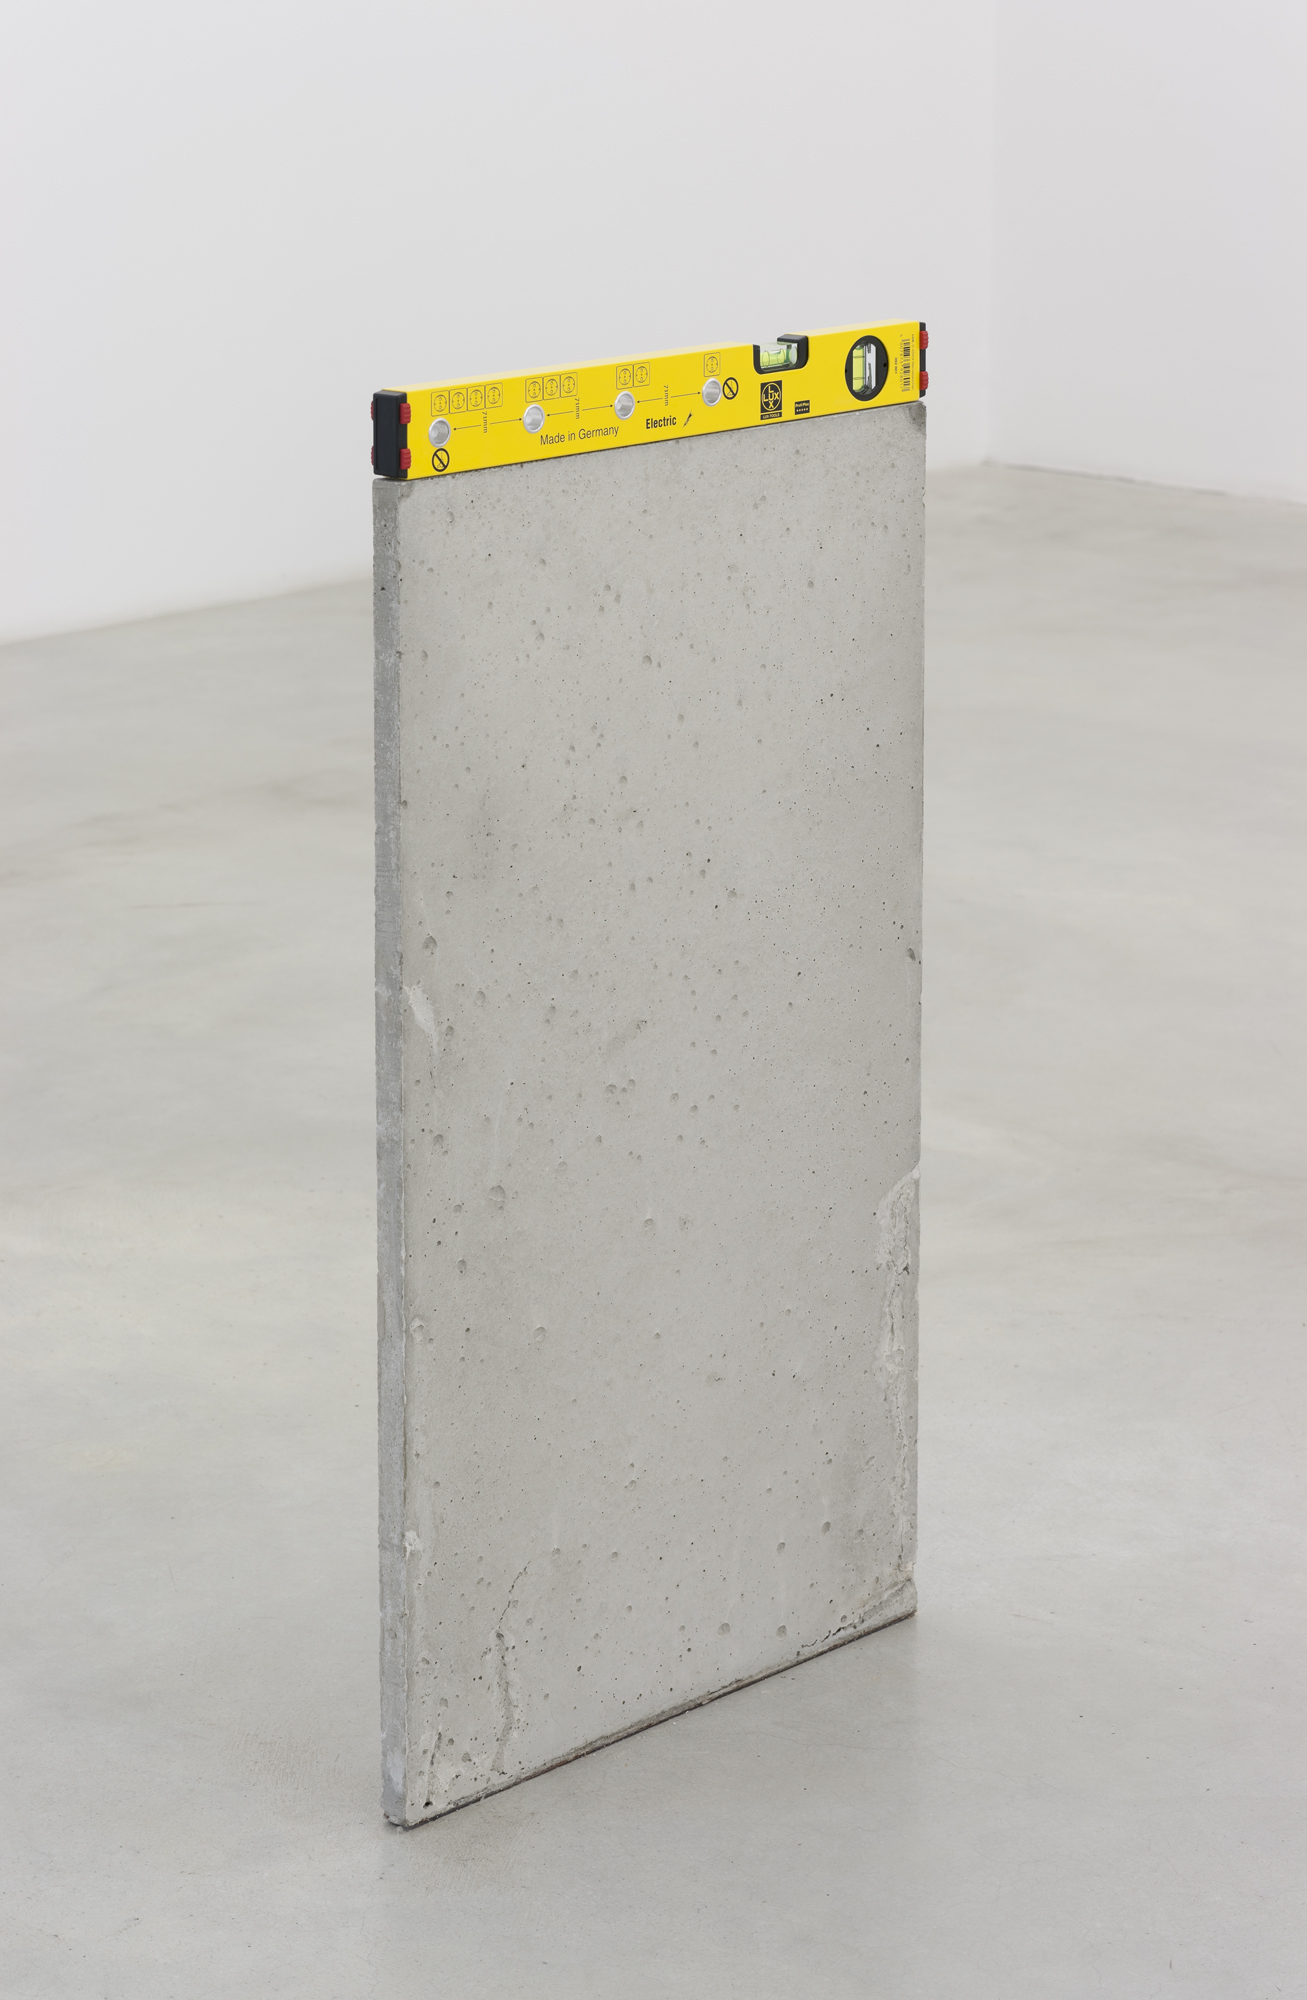 Niveles, concrete, levels, variable dimensions, ongoing series, 2015